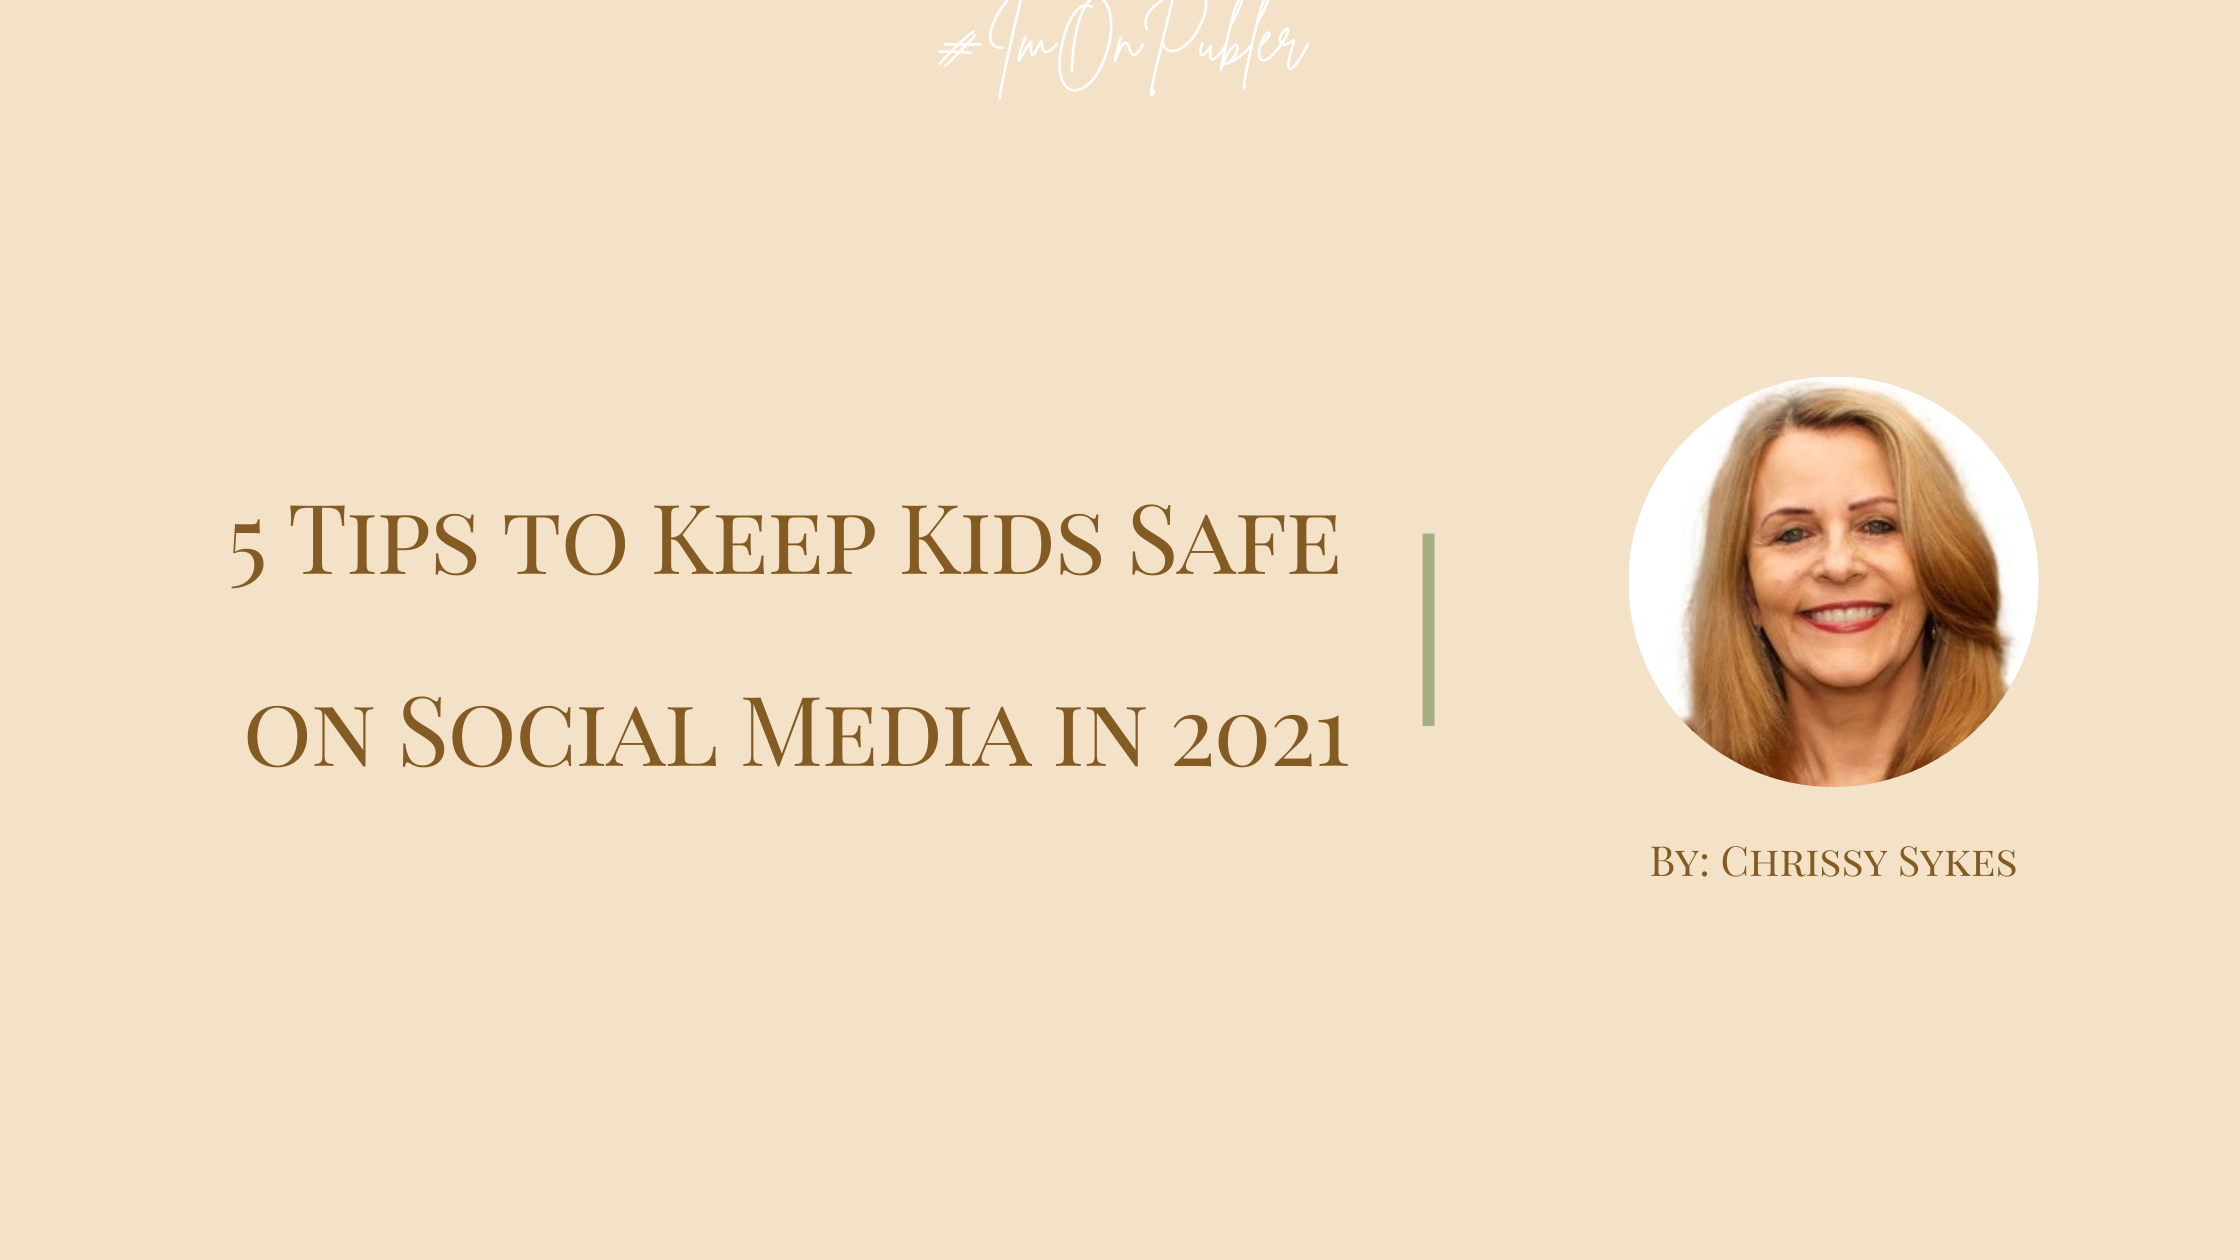 5 Tips to Keep Kids Safe on Social Media in 2021 by Chrissy Sykes